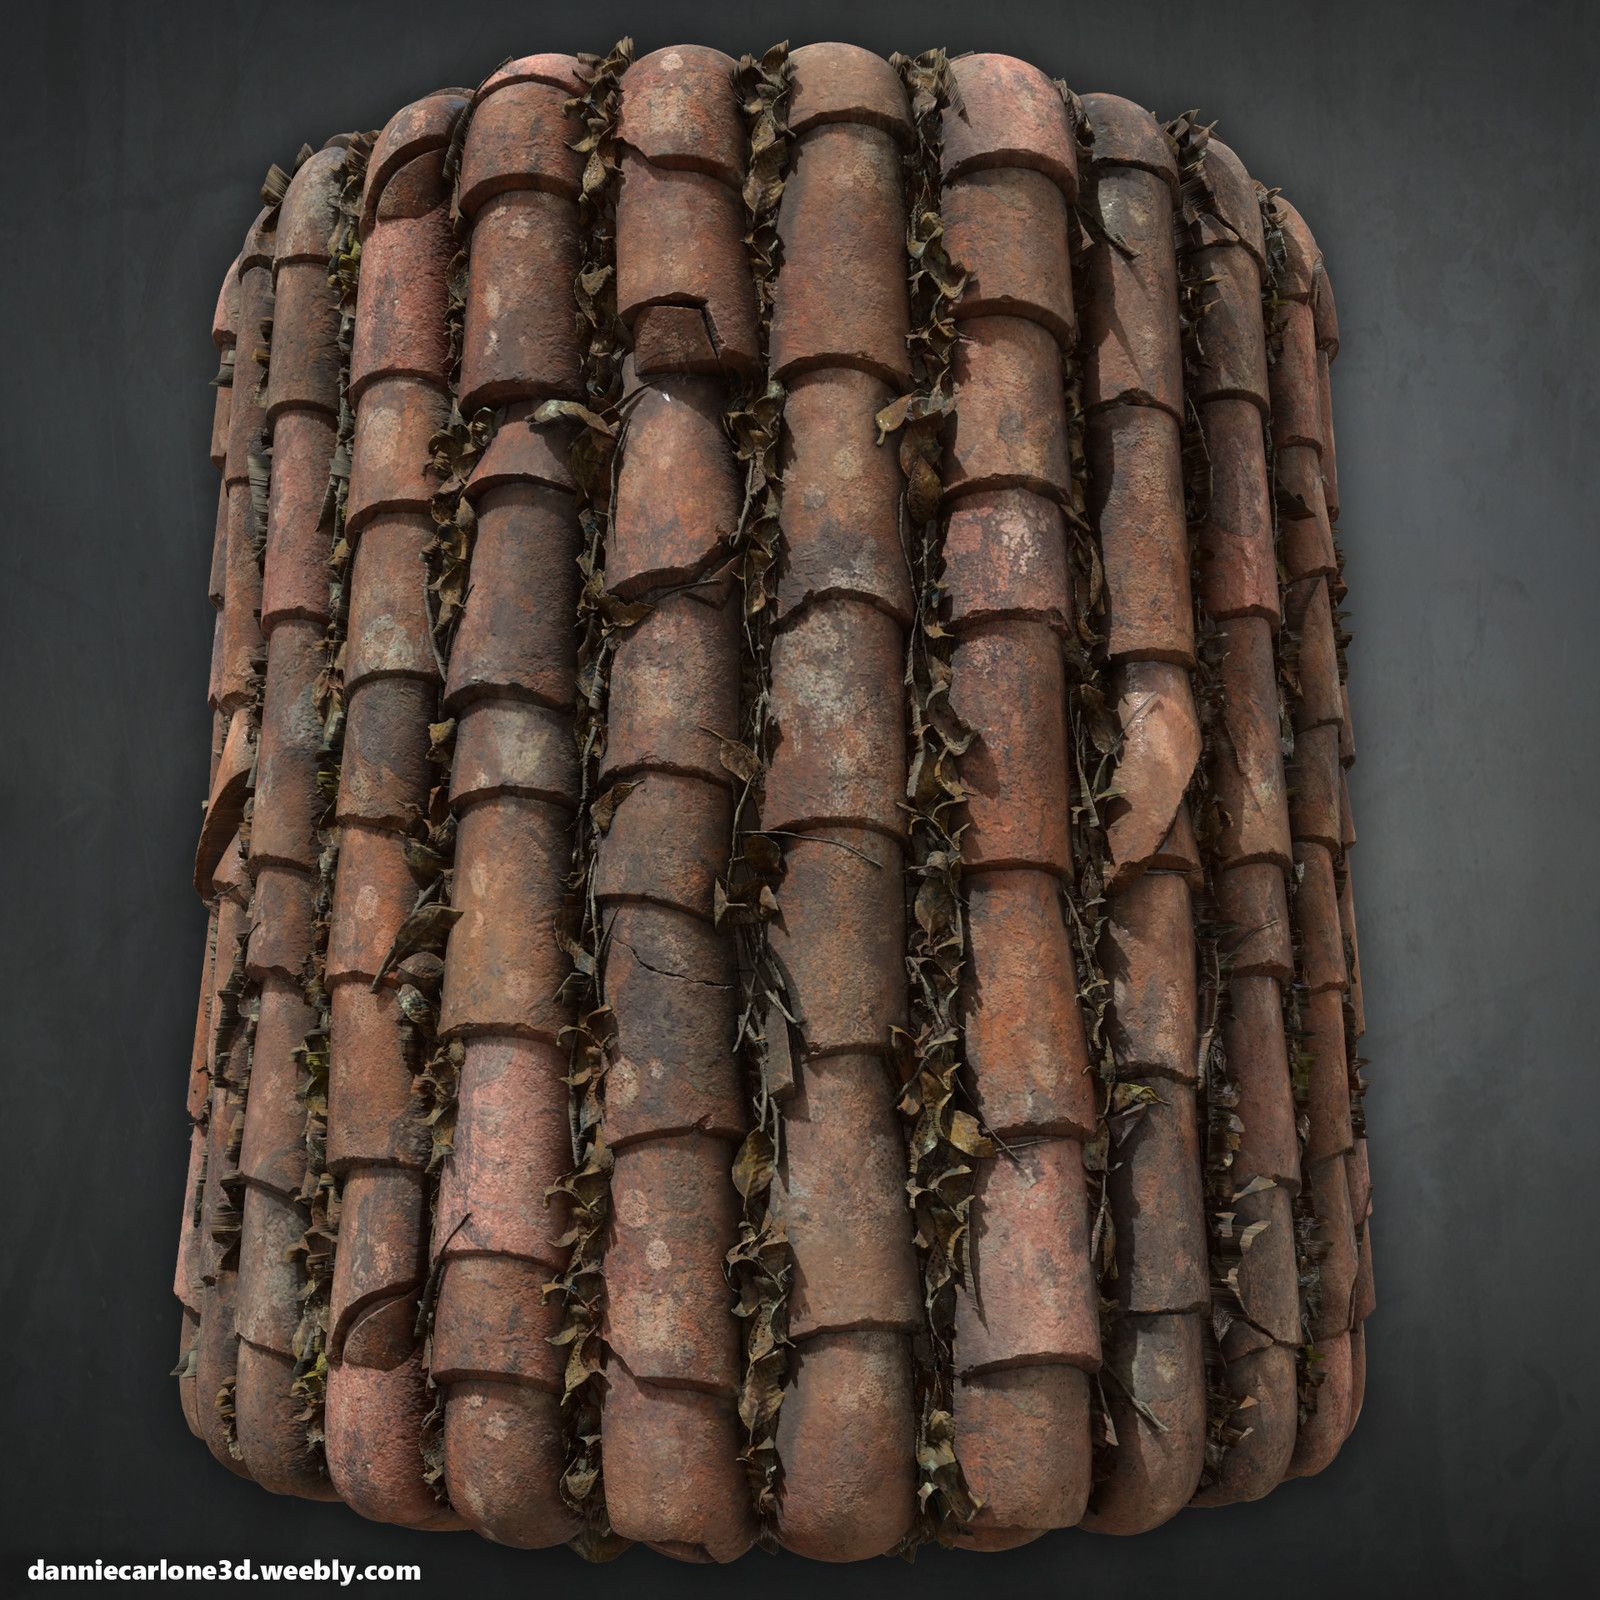 Old Roof Tiles Zbrush Substance Designer Dannie Carlone On Artstation At Https Www Artstation Com Artwork Rnwo2 Fibreglass Roof Roofing Cedar Roof